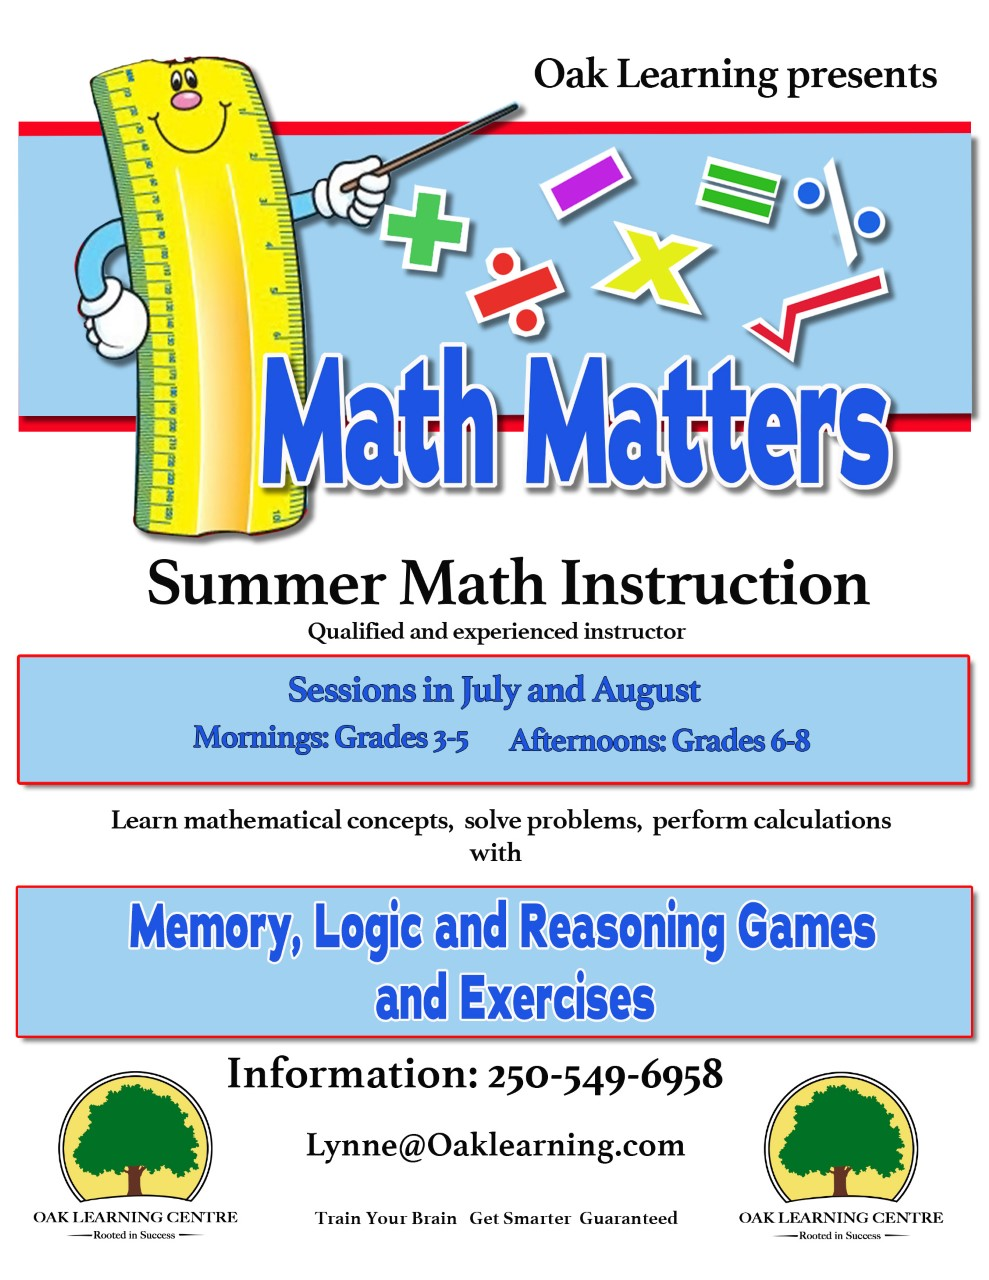 Math Matters Group - Summer Sessions @ Oak Learning Centre (Grades 3-8)